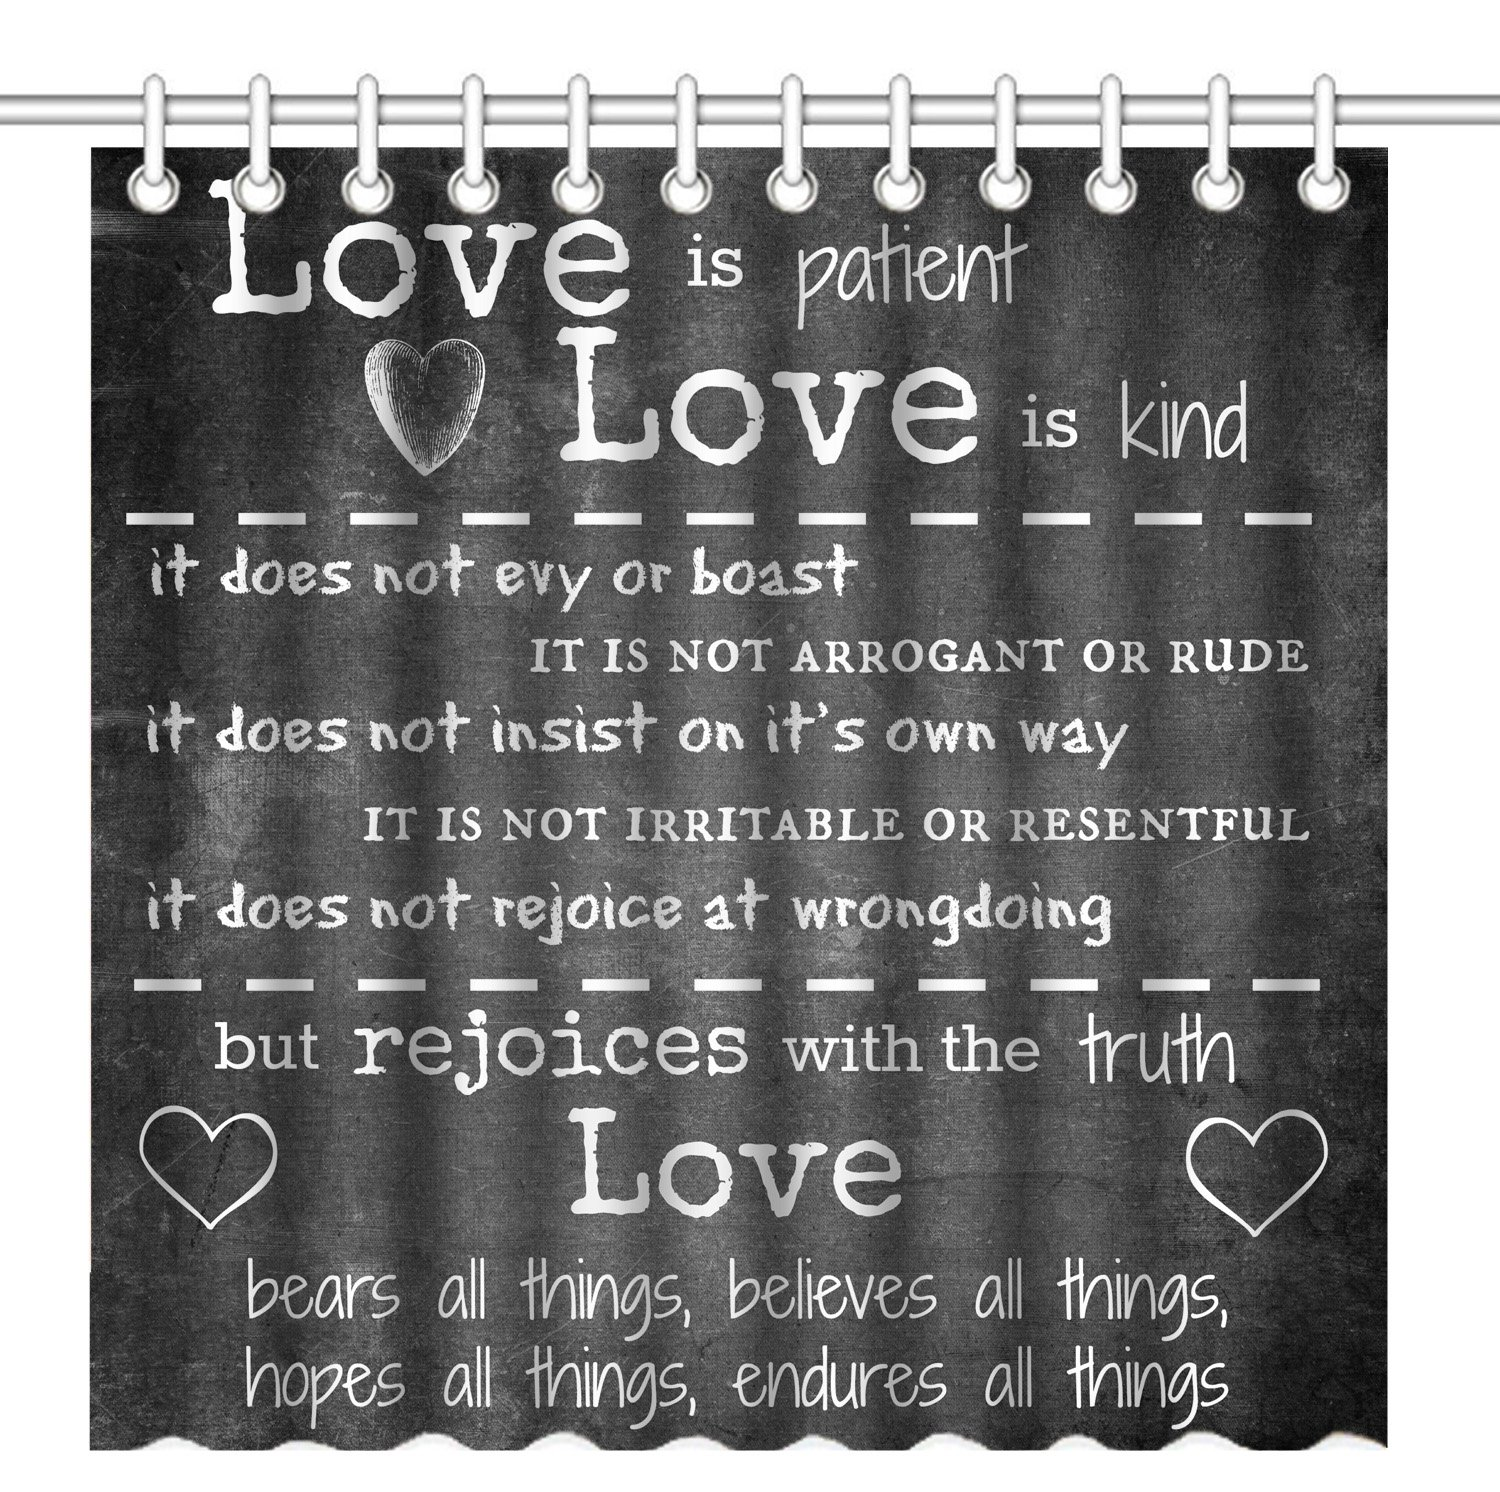 Wknoon 72 x 72 Inch Shower Curtain, Inspirational Quotes About Love - Love is Patient, Waterproof Polyester Fabric Decorative Bathroom Bath Curtains